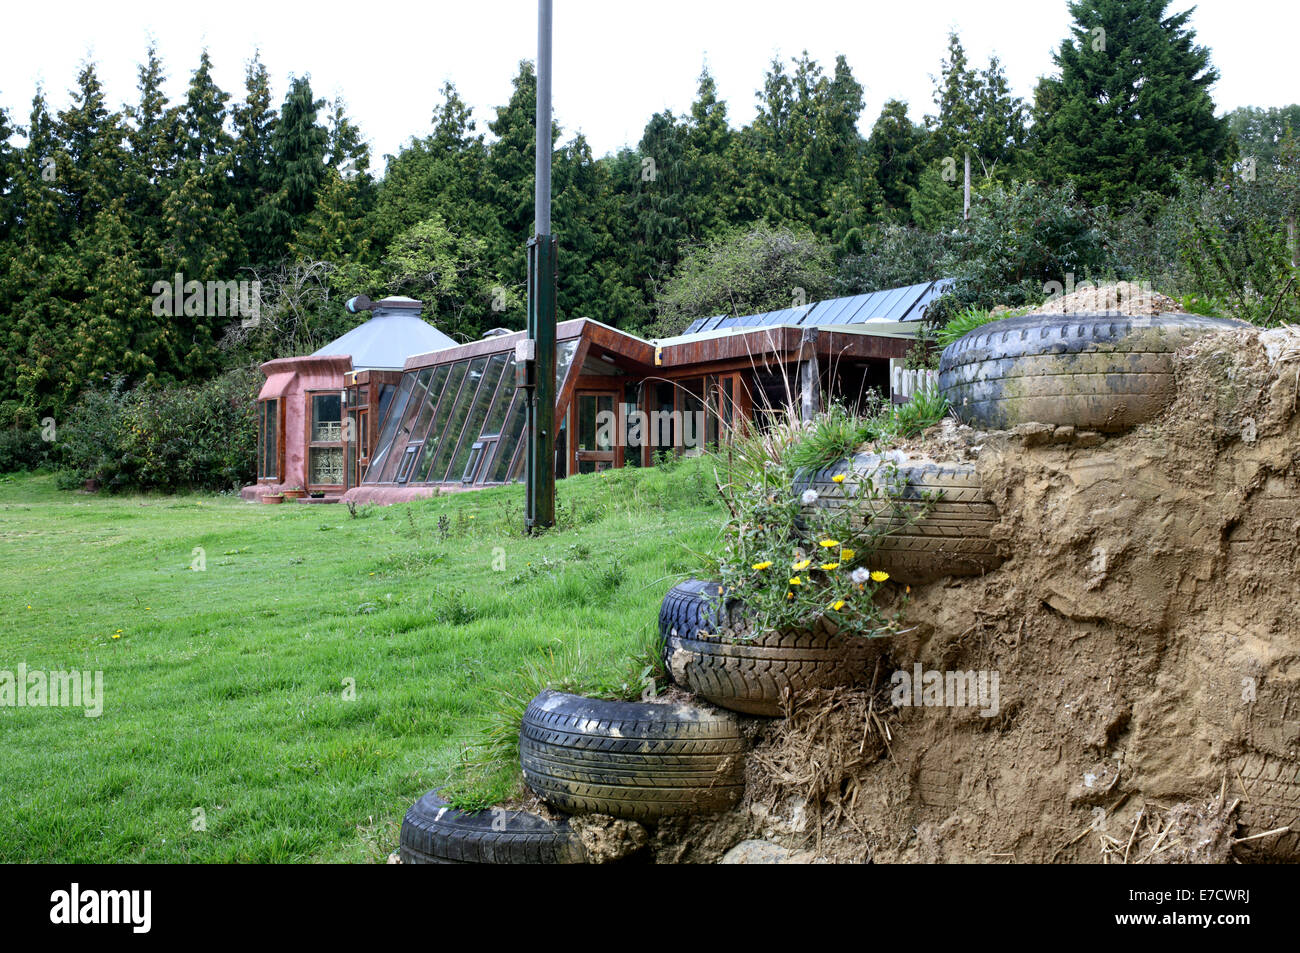 The Brighton Earthship with, in the foreground, an example of how an earthship wall is constructed of vehicle tyres - Stock Image